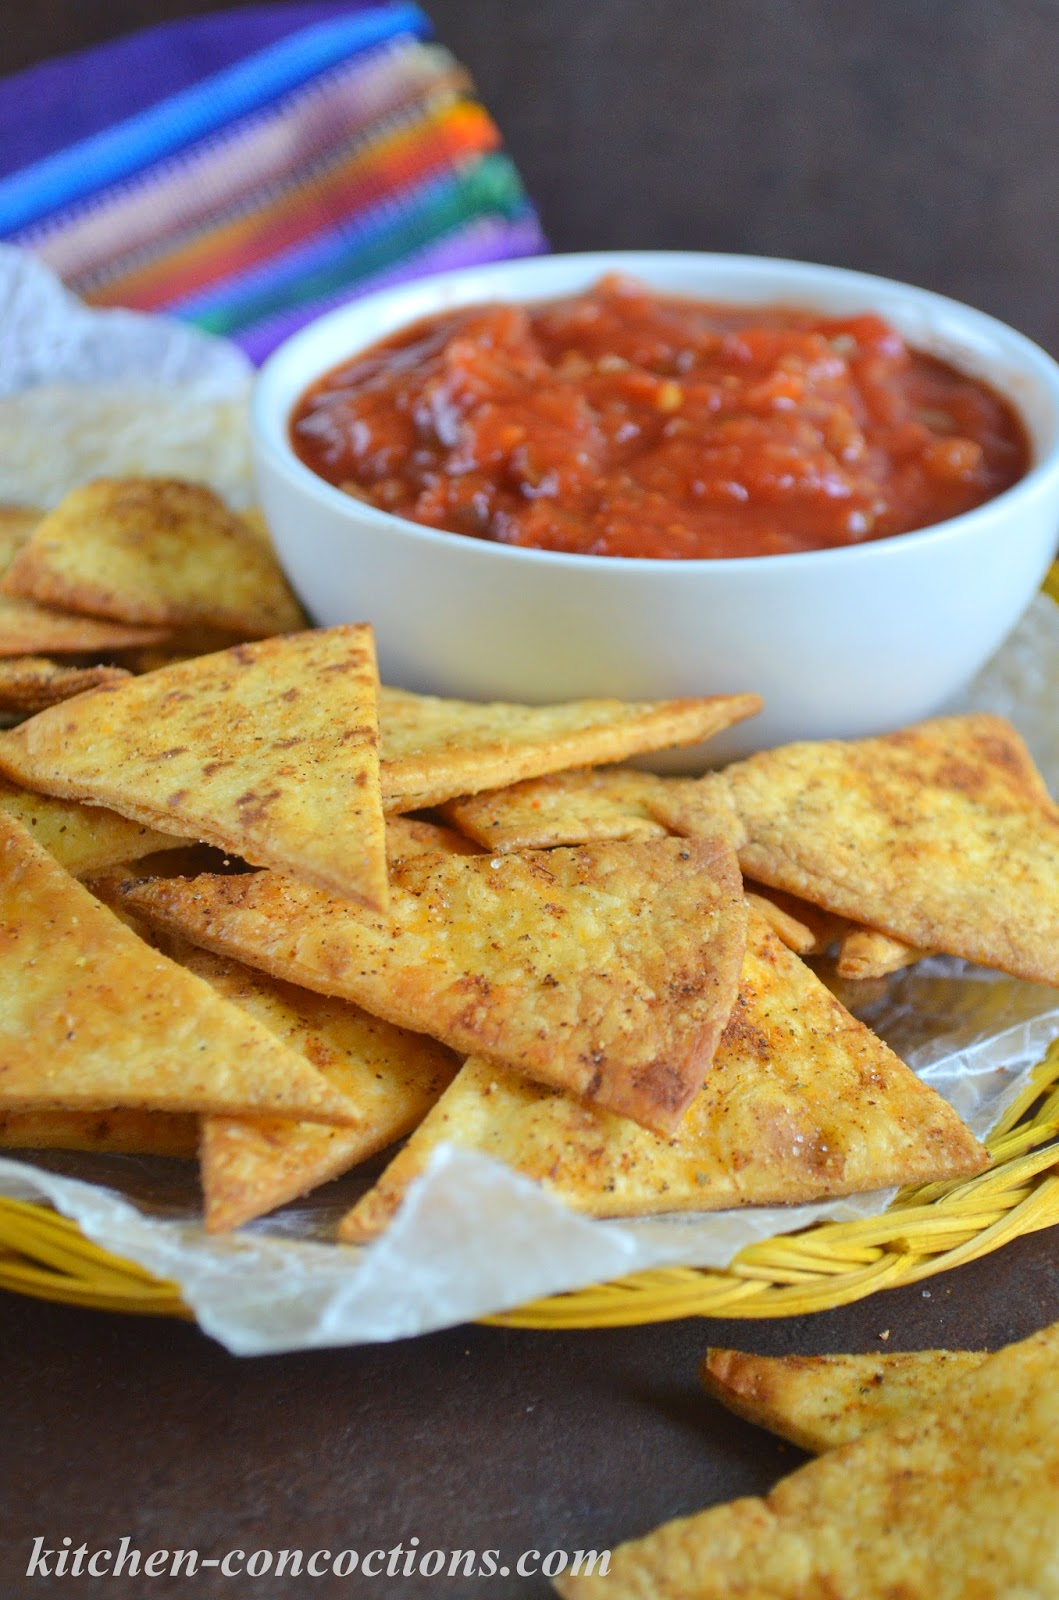 Oven Baked Tortilla Chips Kitchen Concoctions